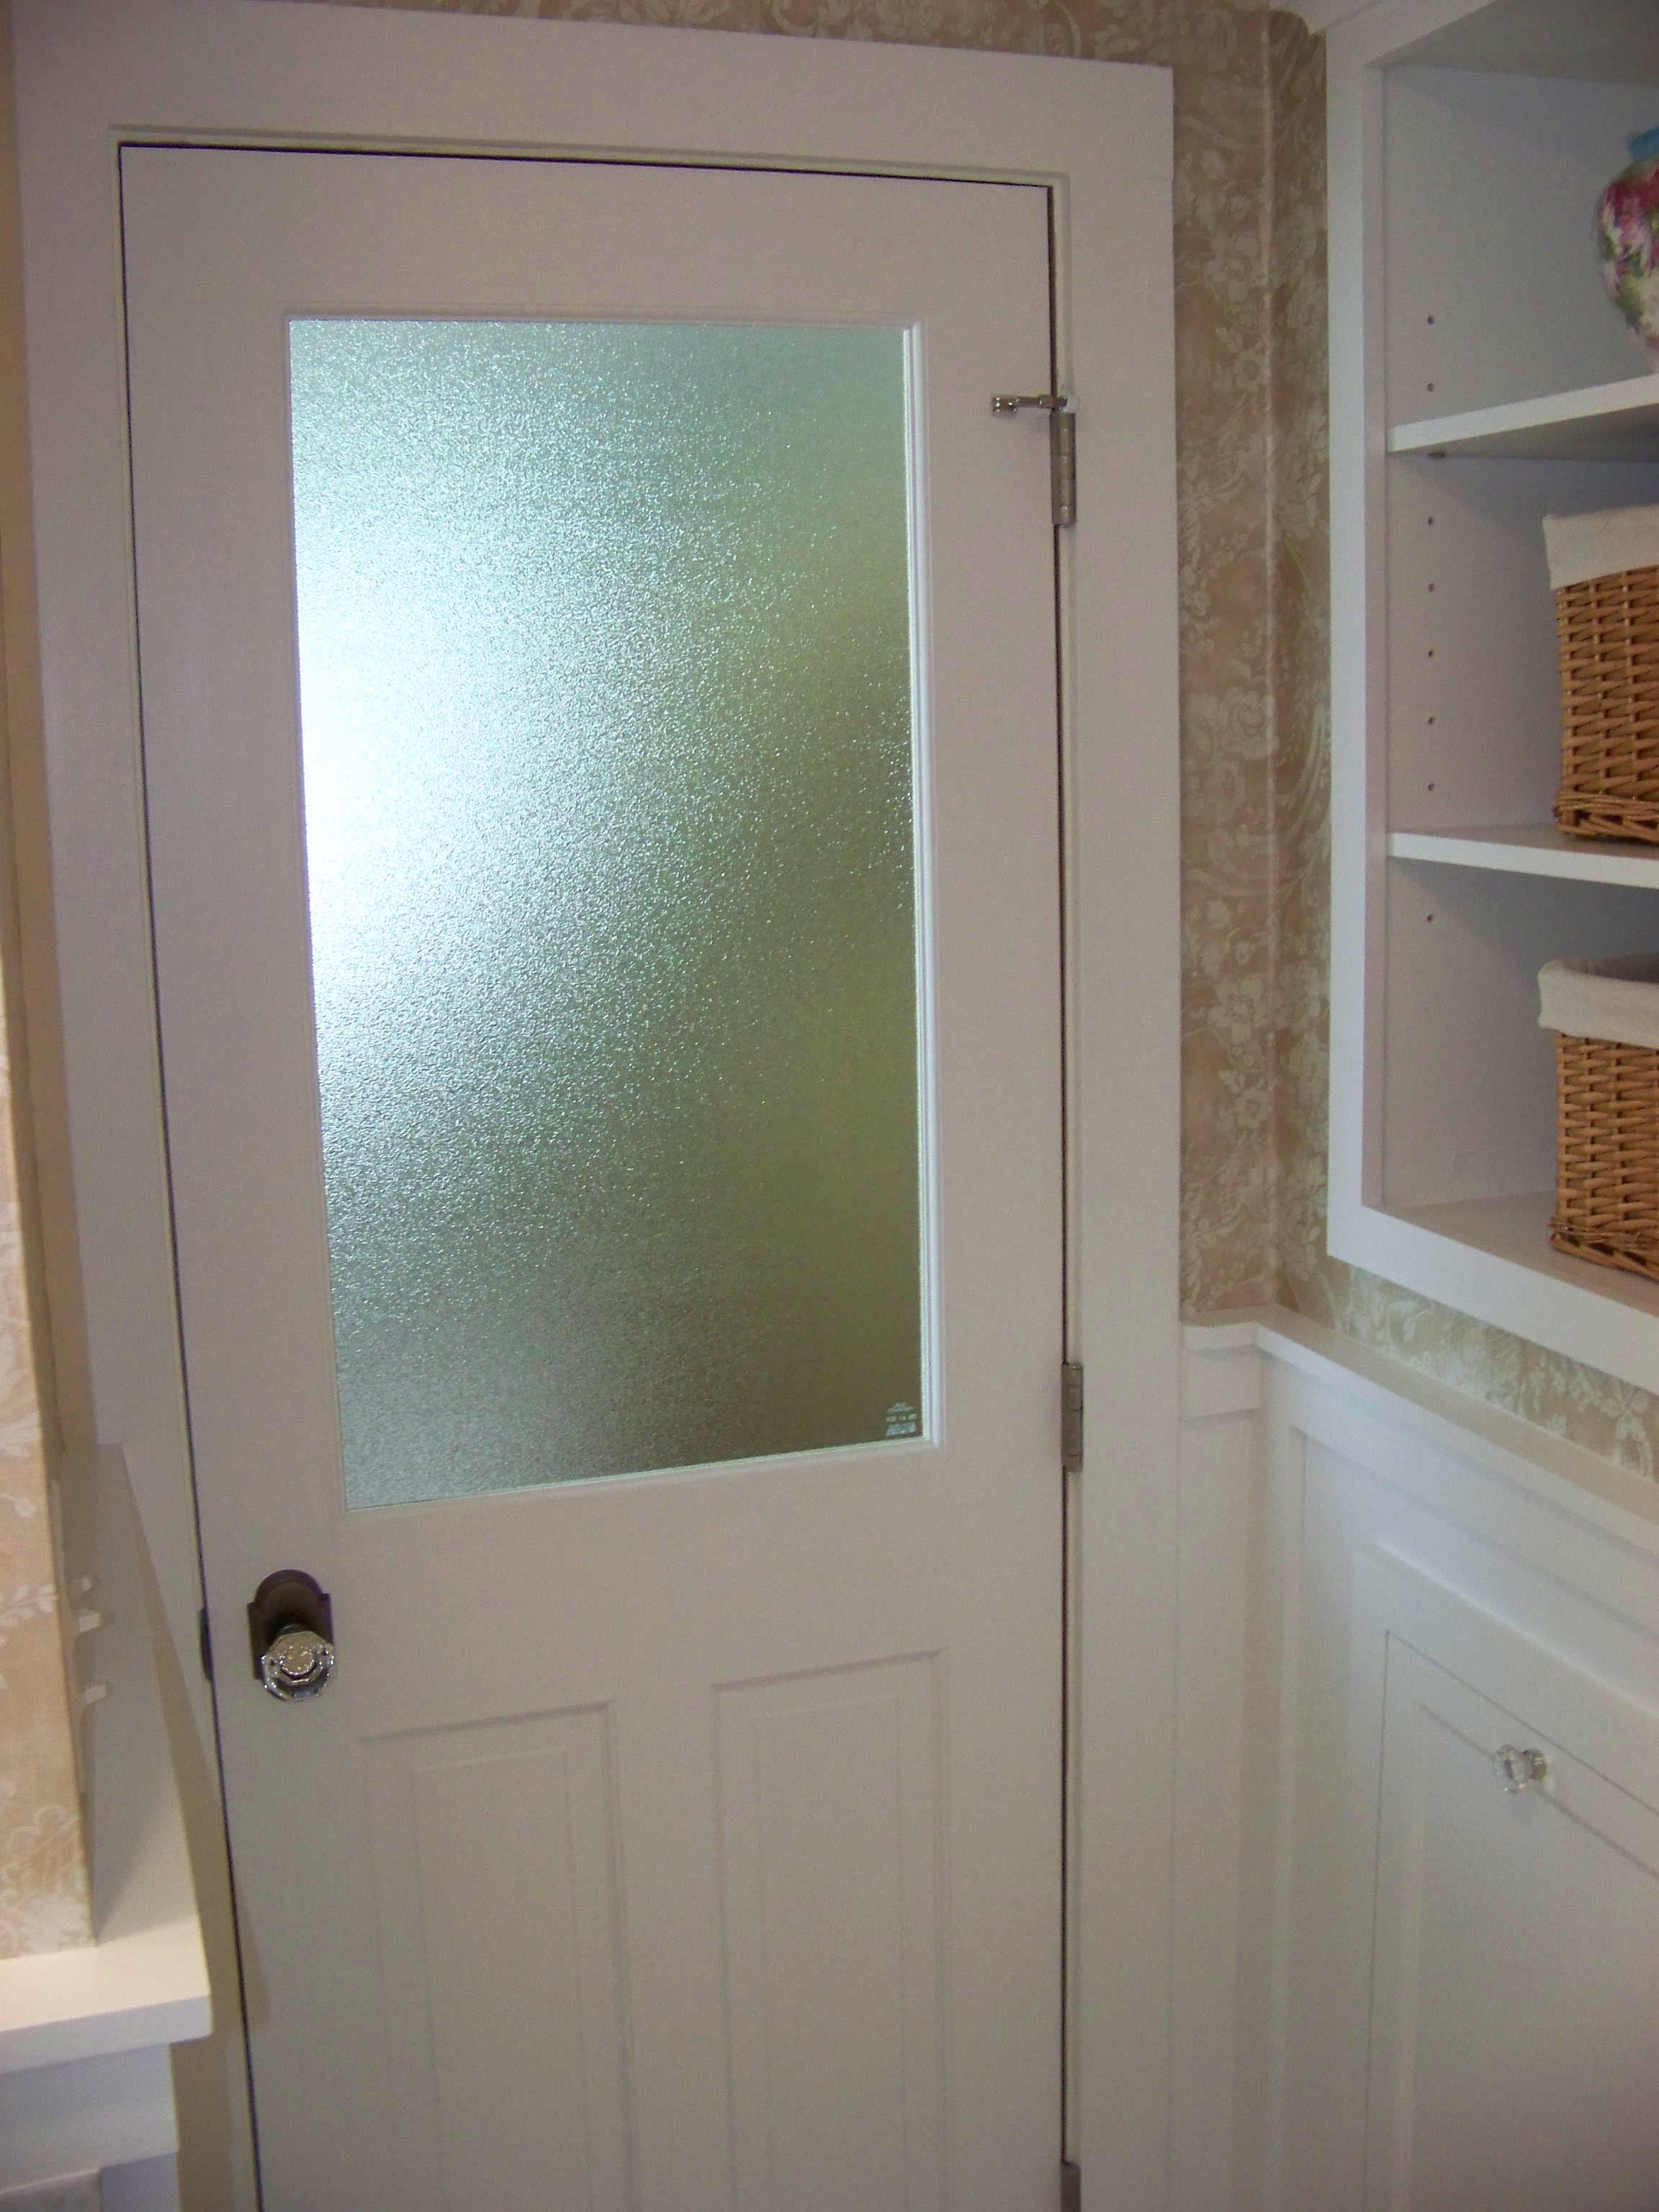 Frosted glass interior doors for bathrooms - Glass Bathroom Doors Interior Interior Design Bathroom